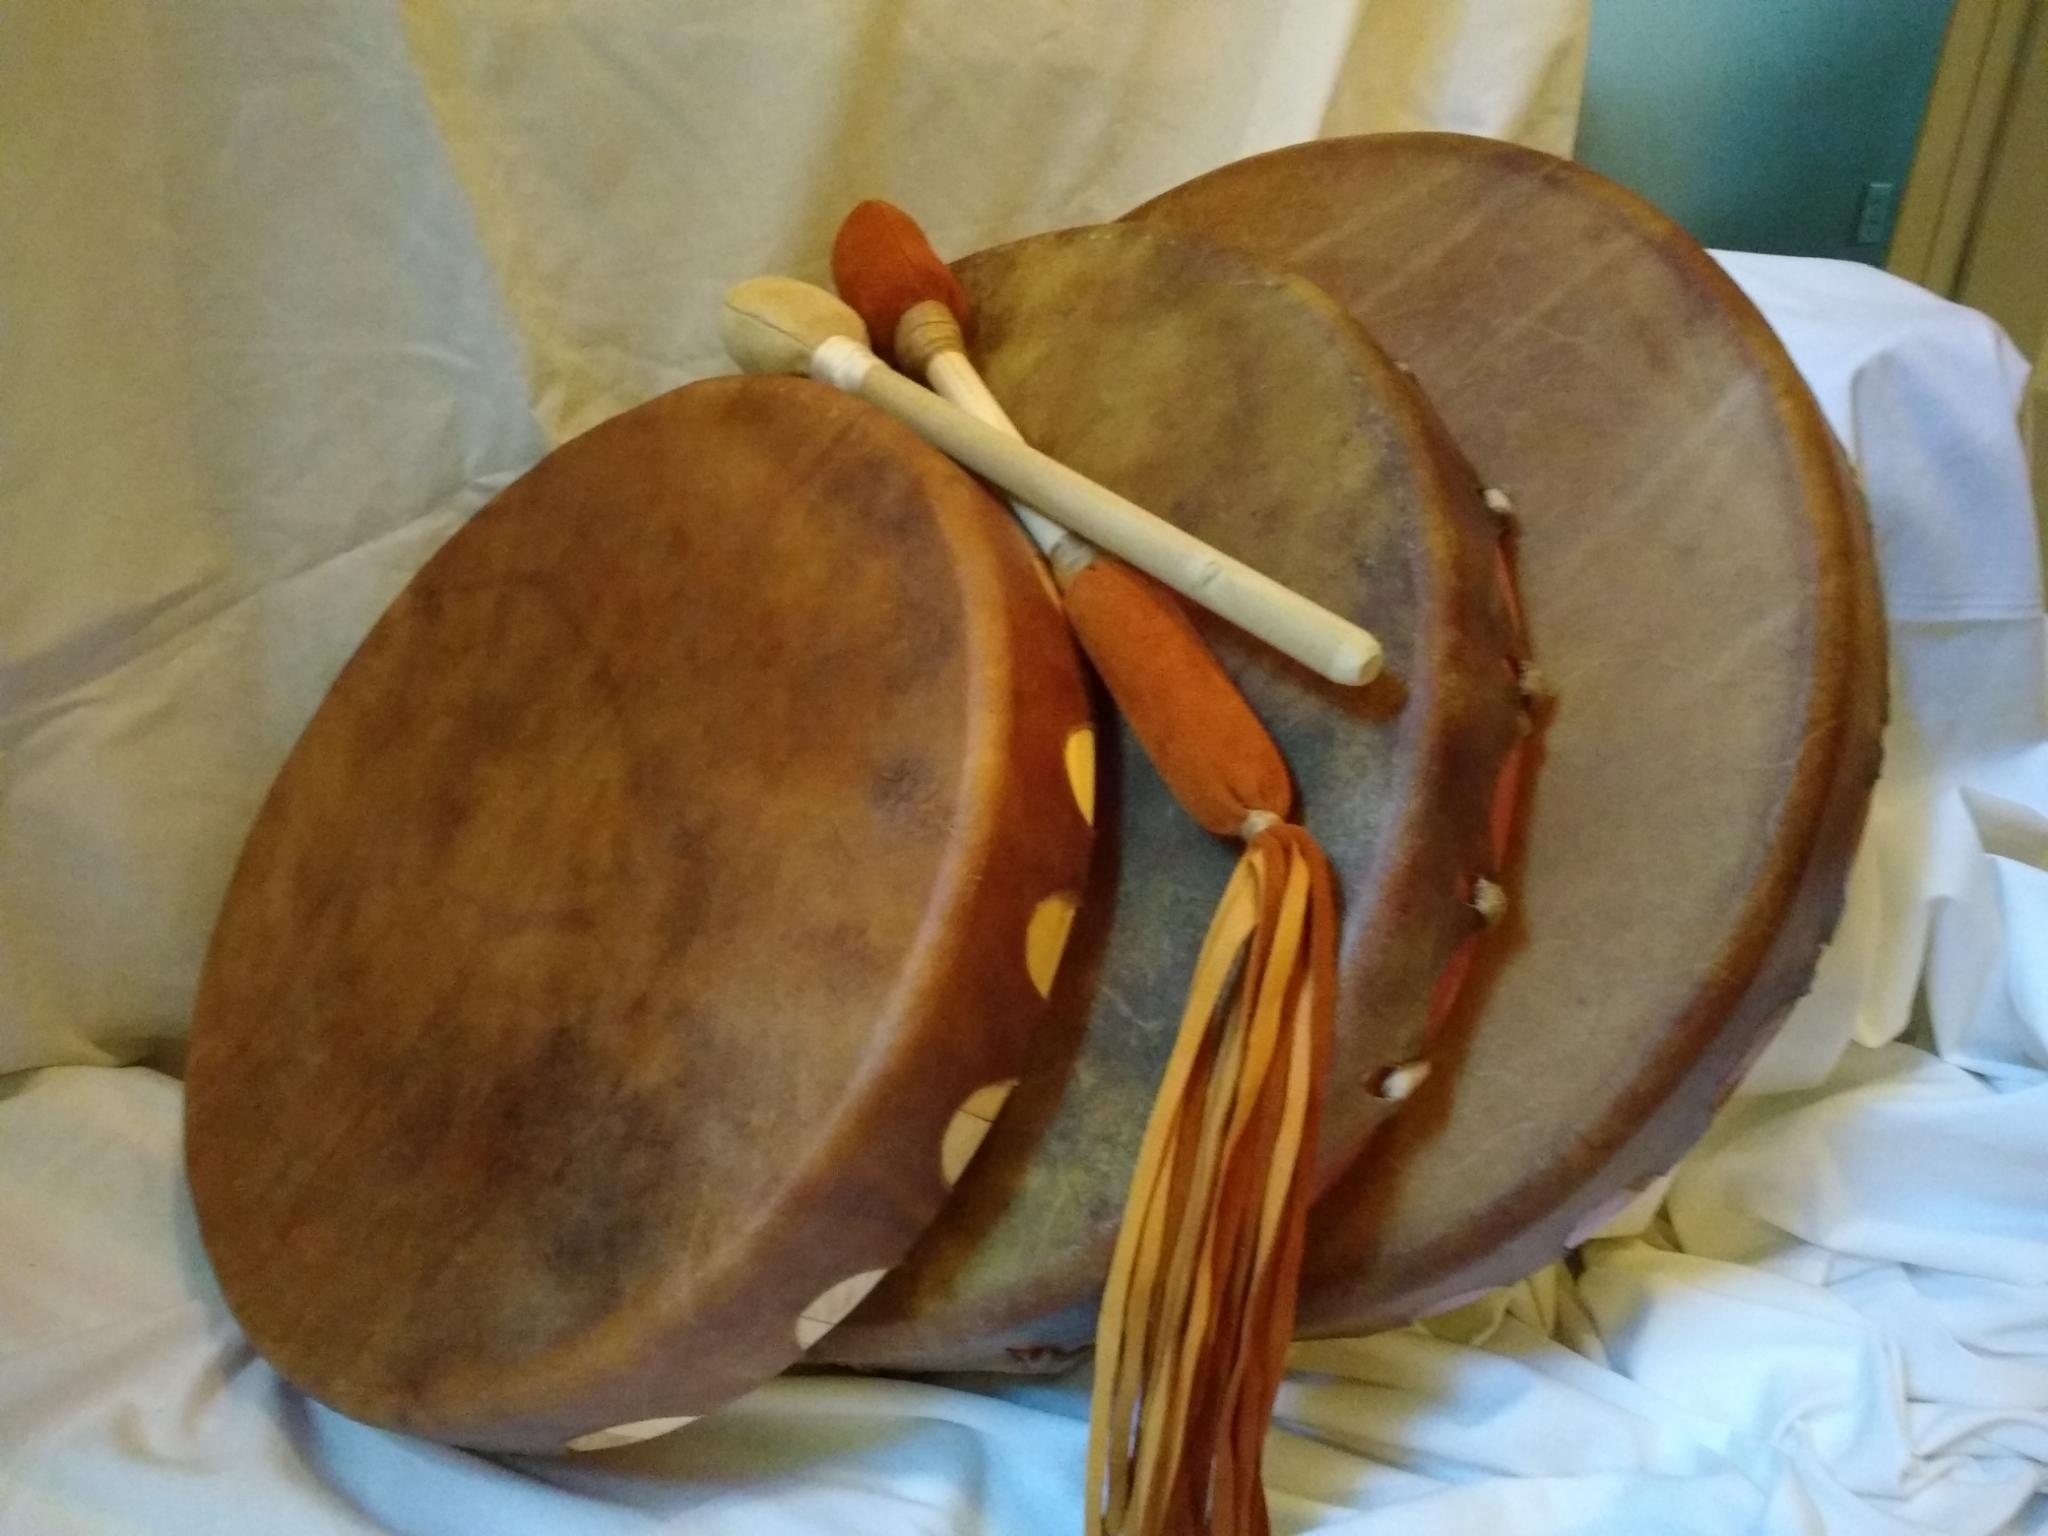 Native American Hand Drums from The Drum People